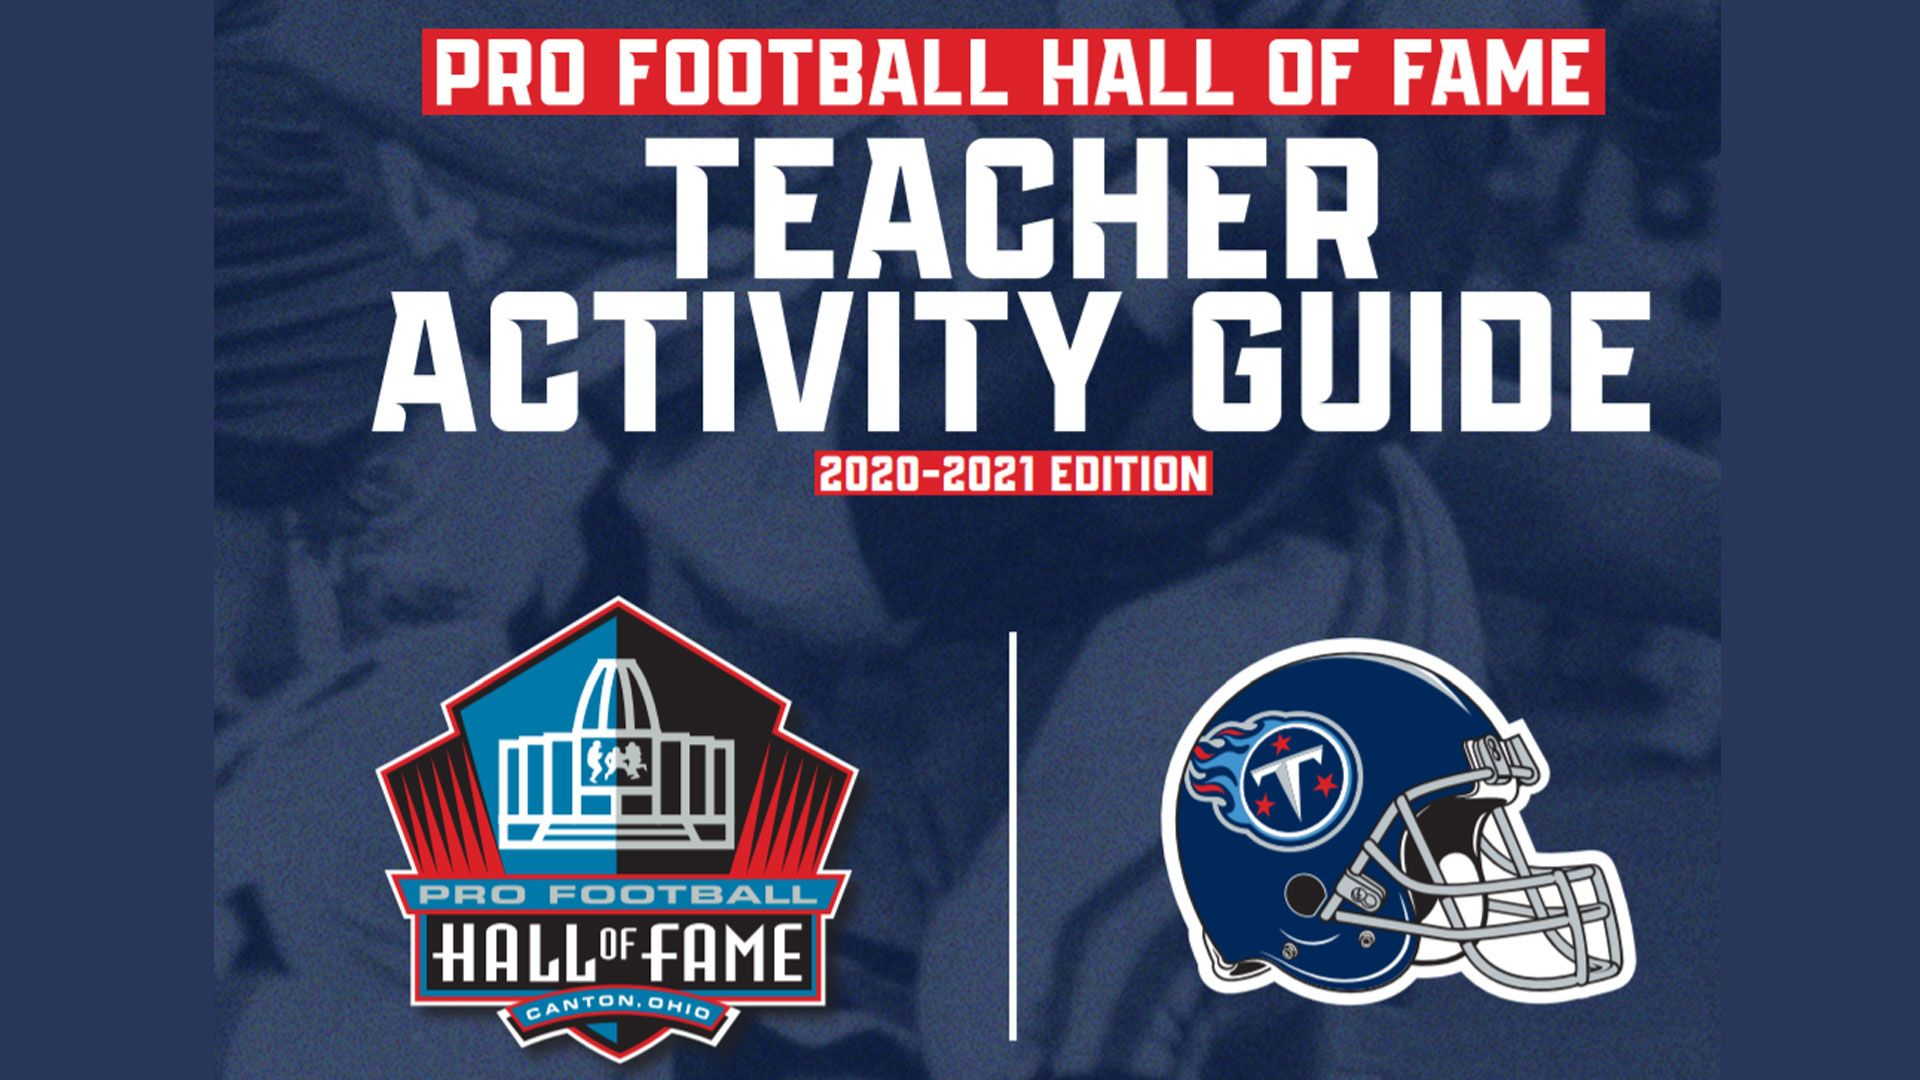 Pro Football Hall of Fame Teacher Activity Guide